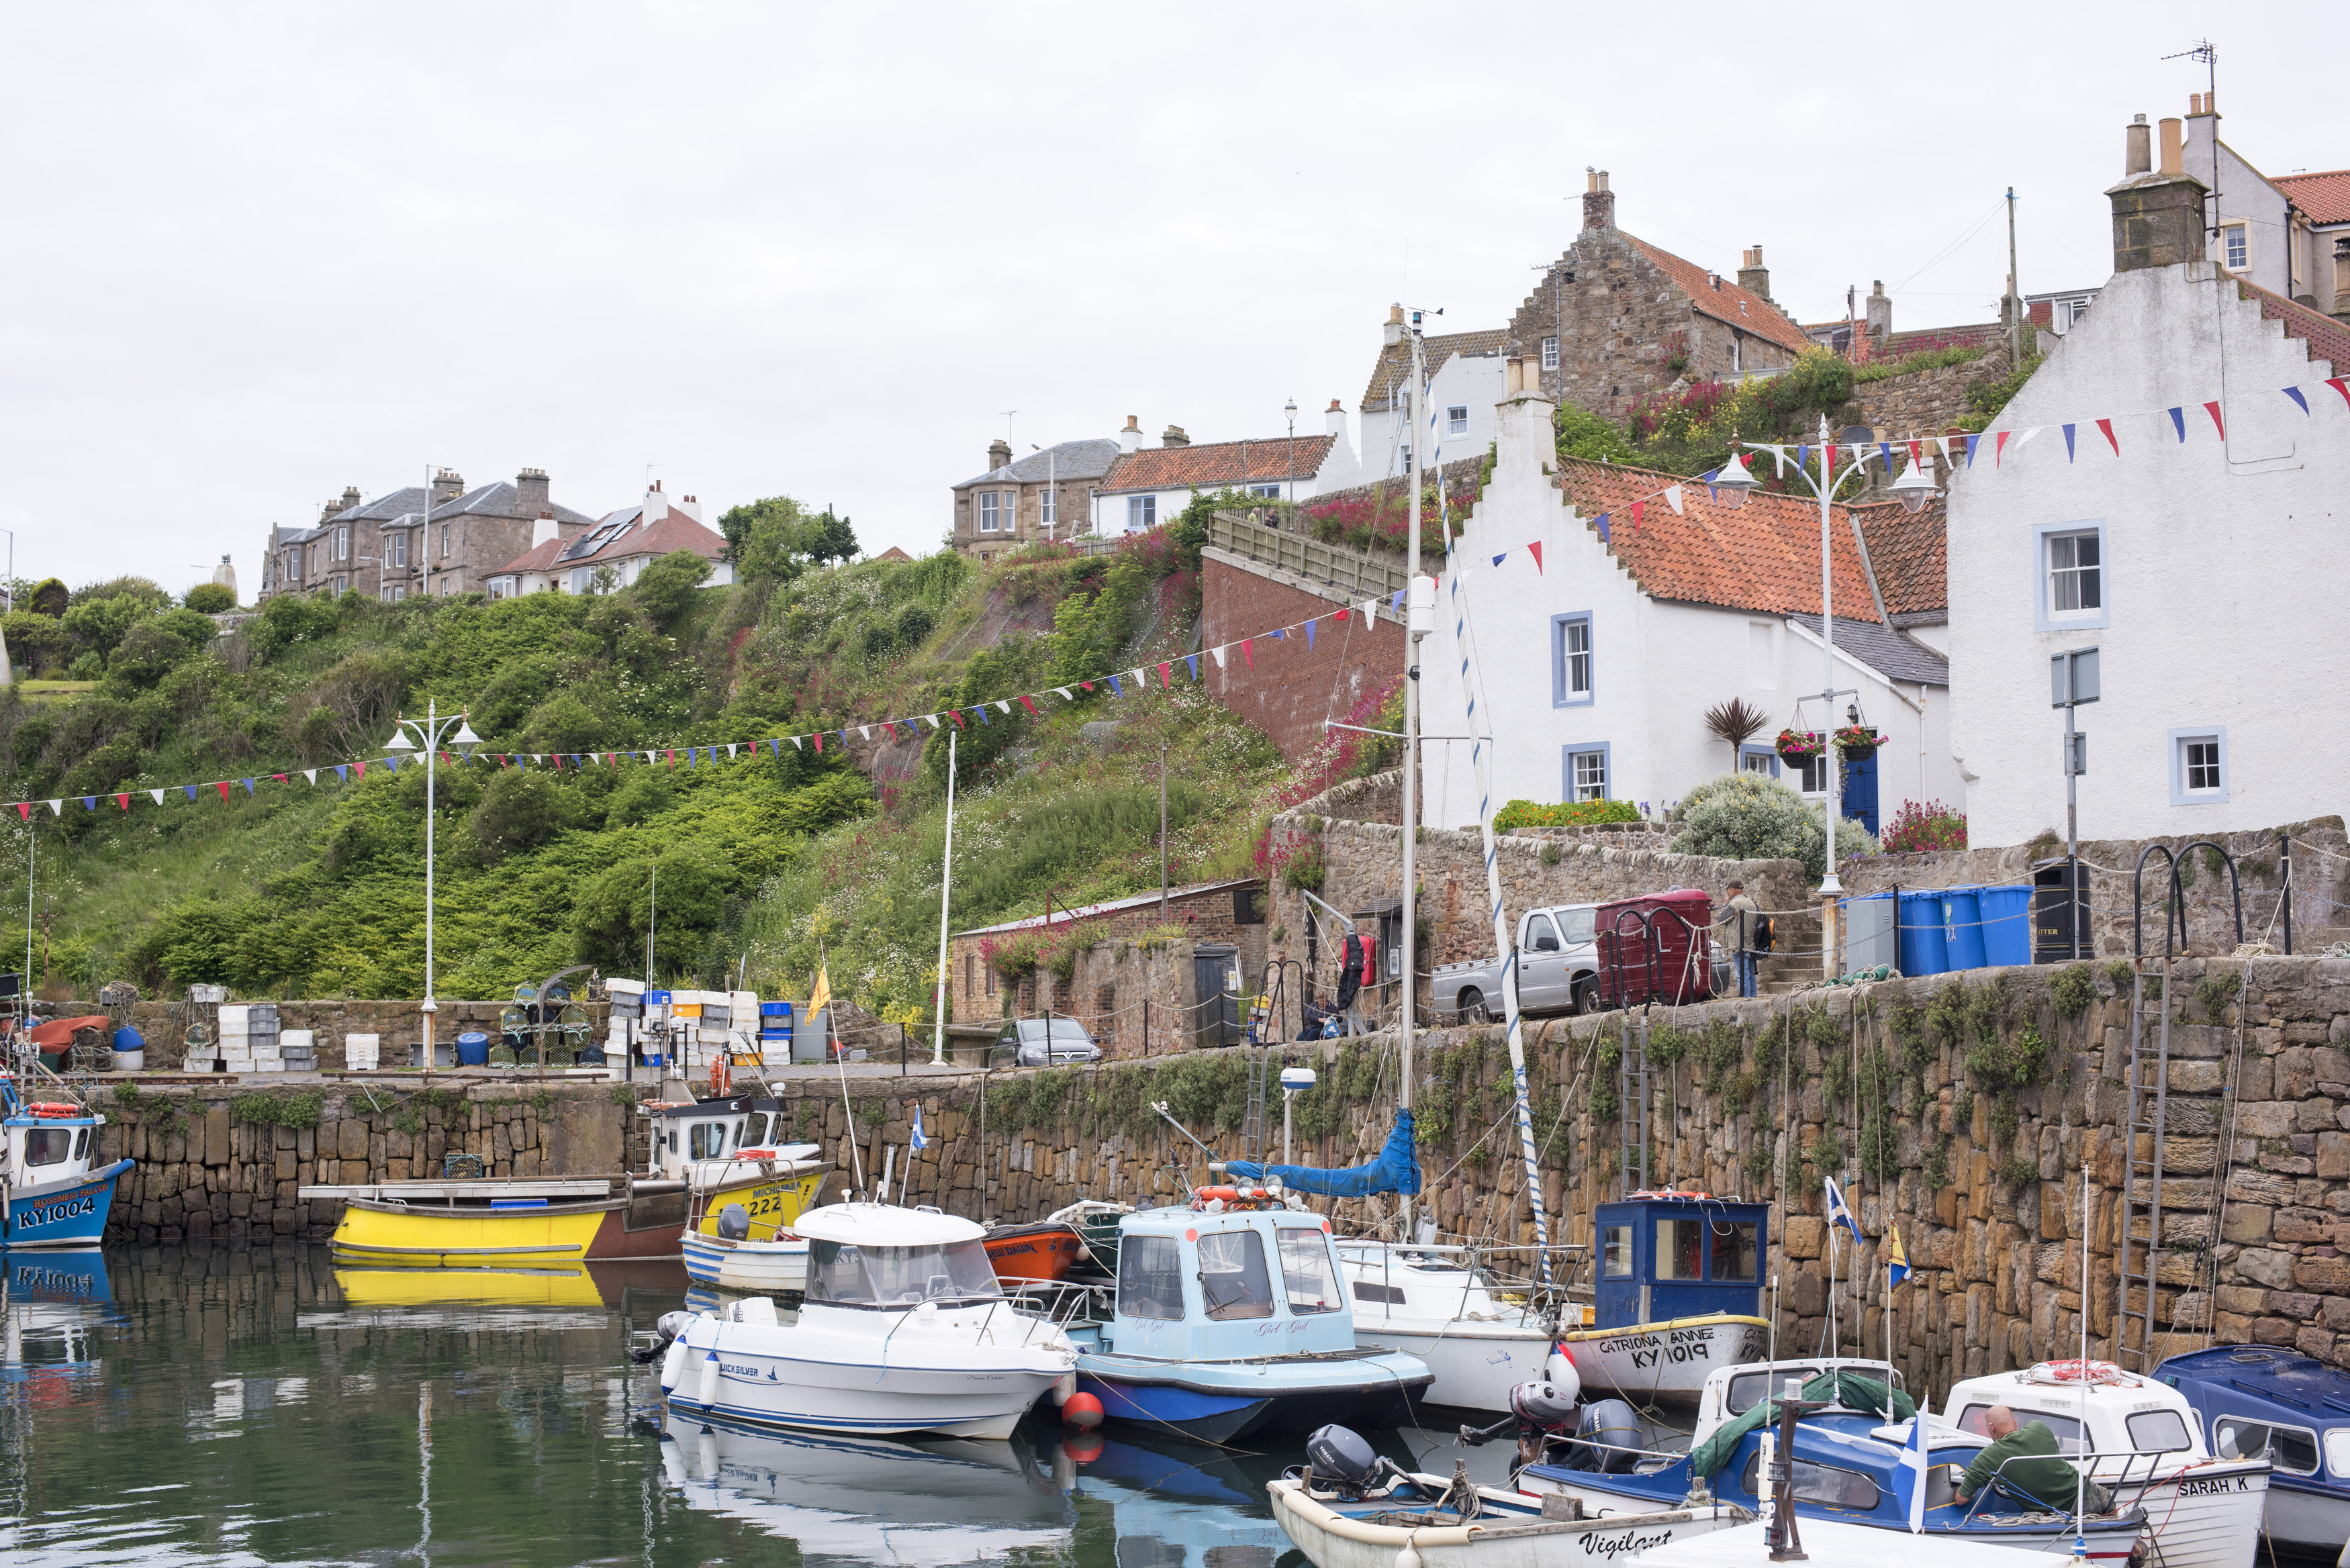 Waterfront view of small fishing boats moored at Crail, Scotland, a picturesque fishing village on the Fife coast